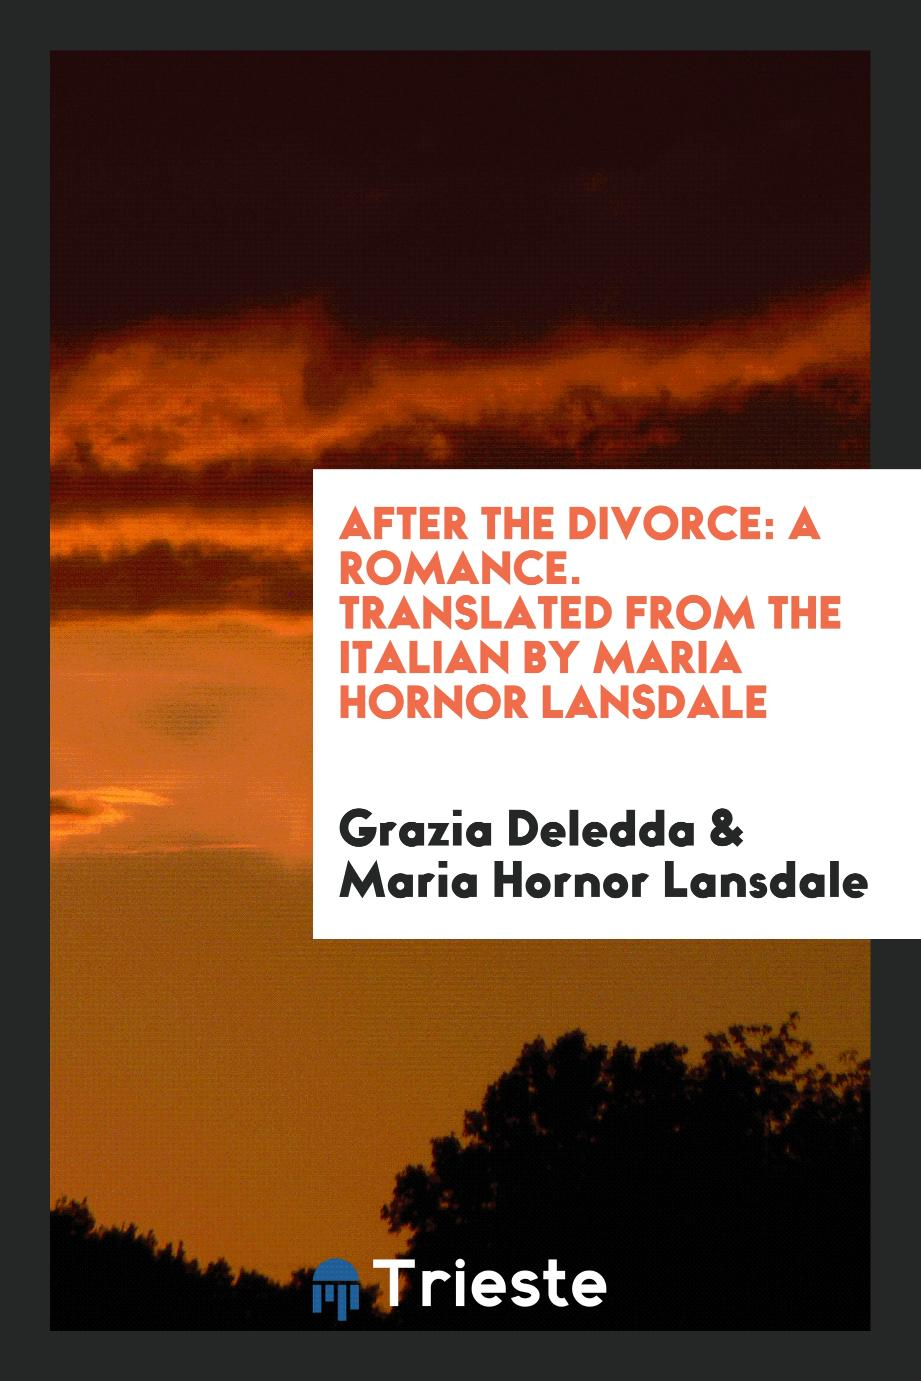 After the Divorce: A Romance. Translated from the Italian by Maria Hornor Lansdale